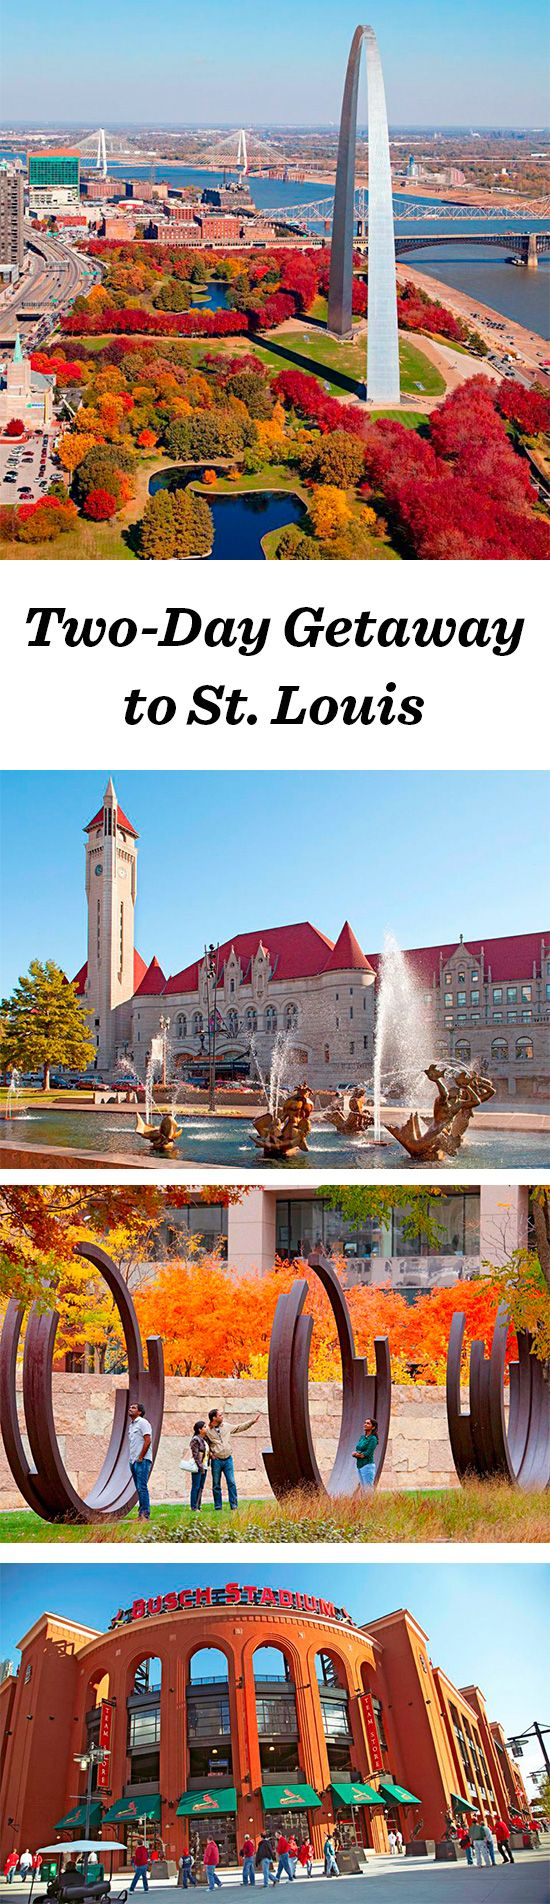 Fall Affair:Talk about a great deal: Gorgeous free museums balance a lively professional sports scene. Pretty parks, the blues, ethnic foods and great breweries await in St. Louis neighborhoods: http://www.midwestliving.com/travel/missouri/st-louis/two-day-getaway-to-st-louis.